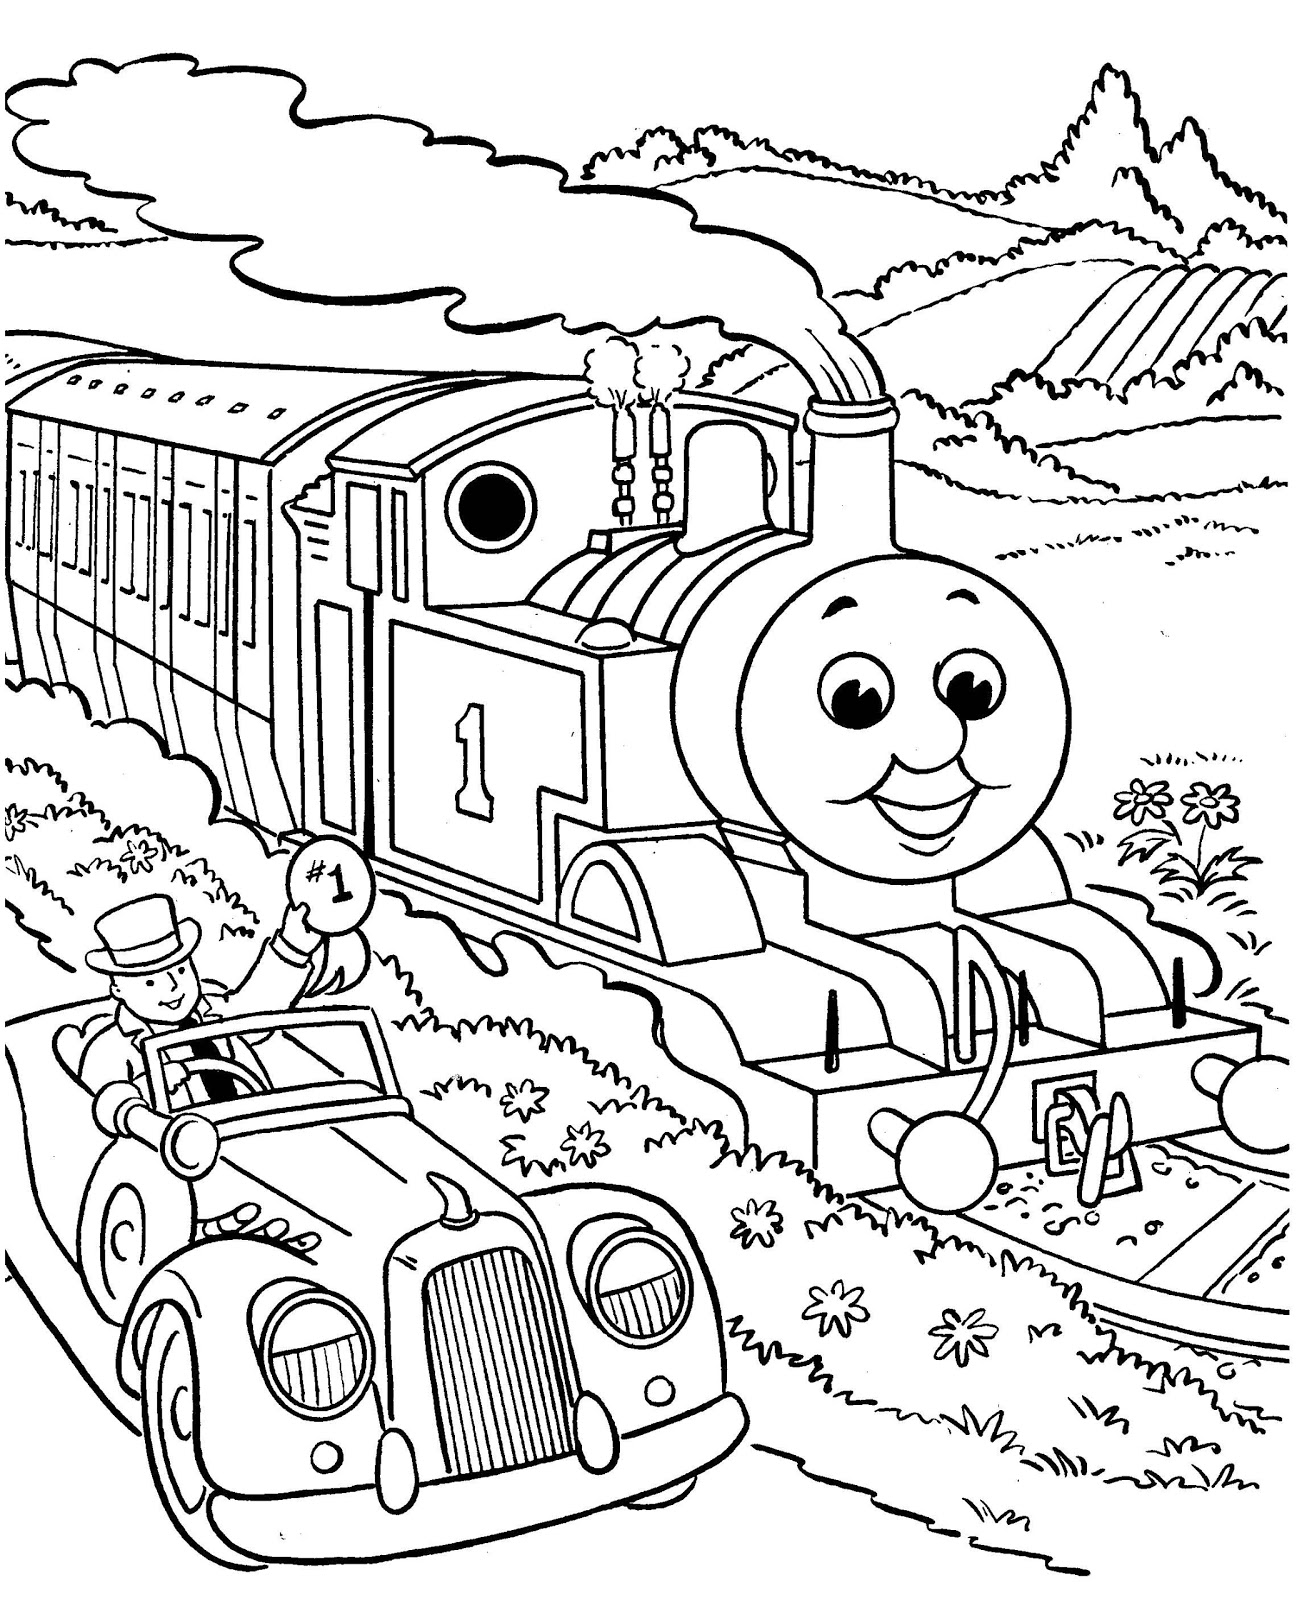 Thomas The Train Drawing at GetDrawings.com | Free for personal use ...